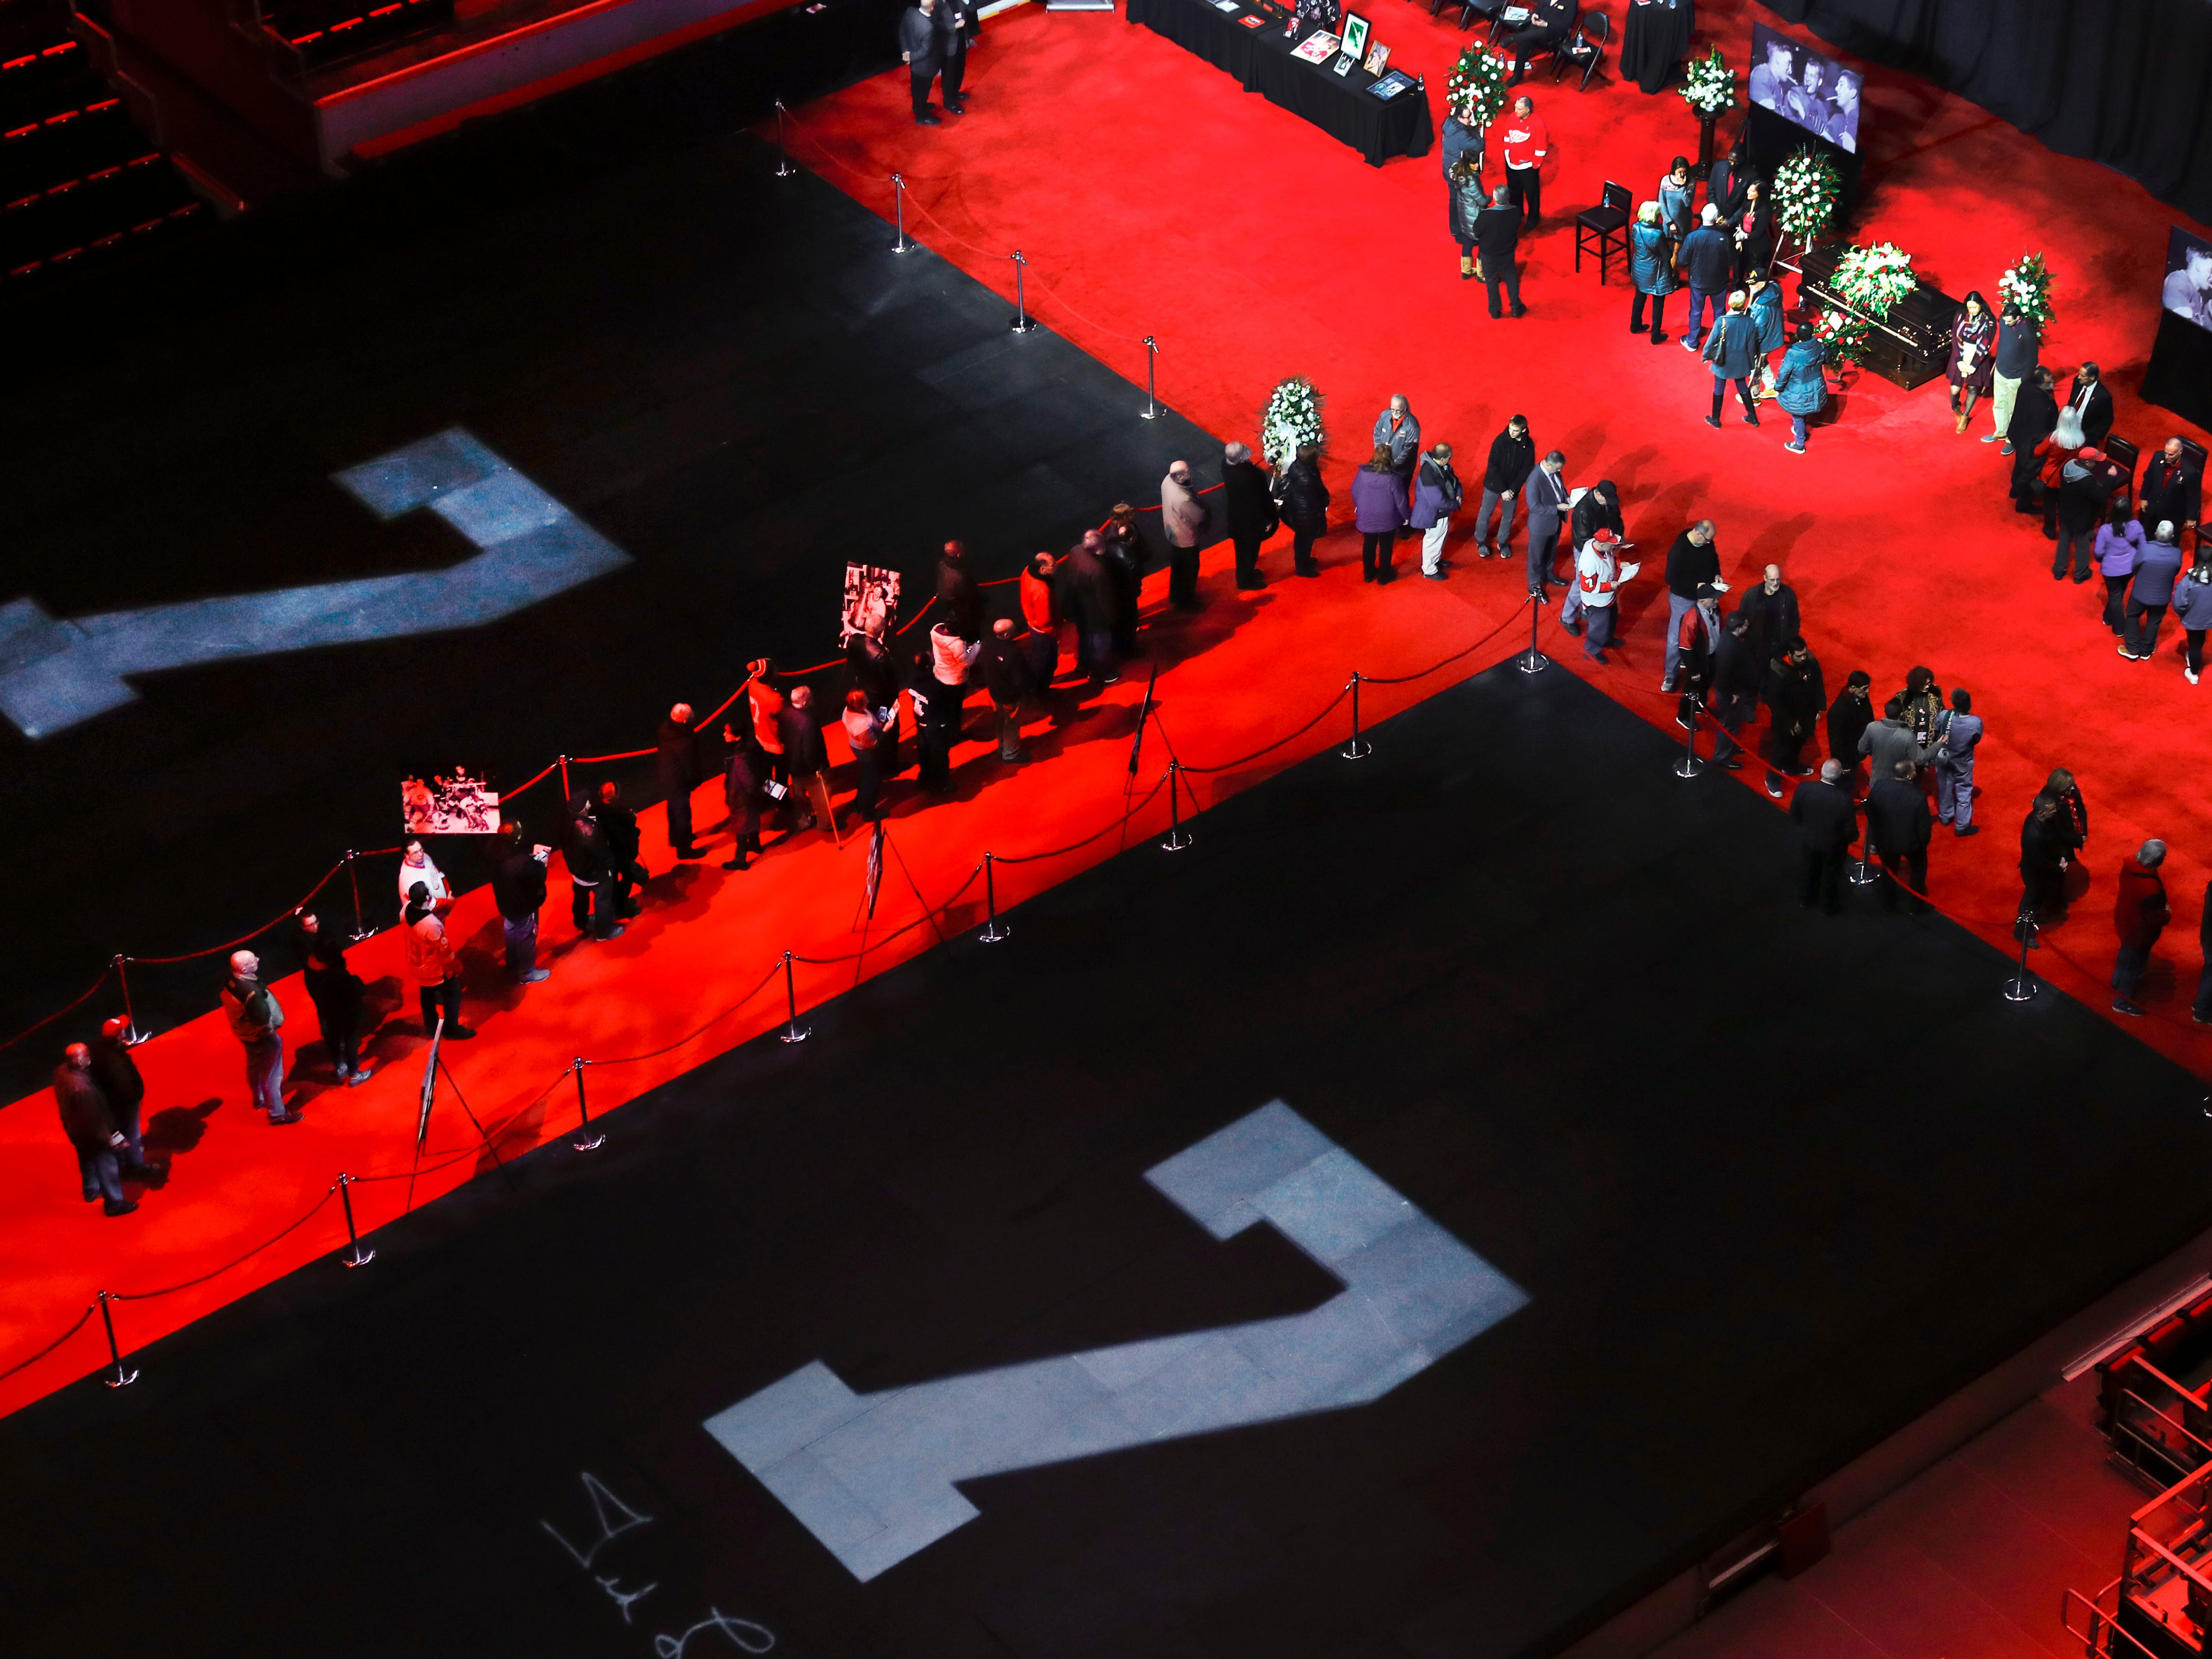 The line to the casket of former Detroit Red Wings player Ted Lindsay snakes around his No. 7s on the floor at Little Caesars Arena in Detroit Friday afternoon, March 8, 2019.  The Hall of Famer and Red Wings legend died Monday at the age of 93.